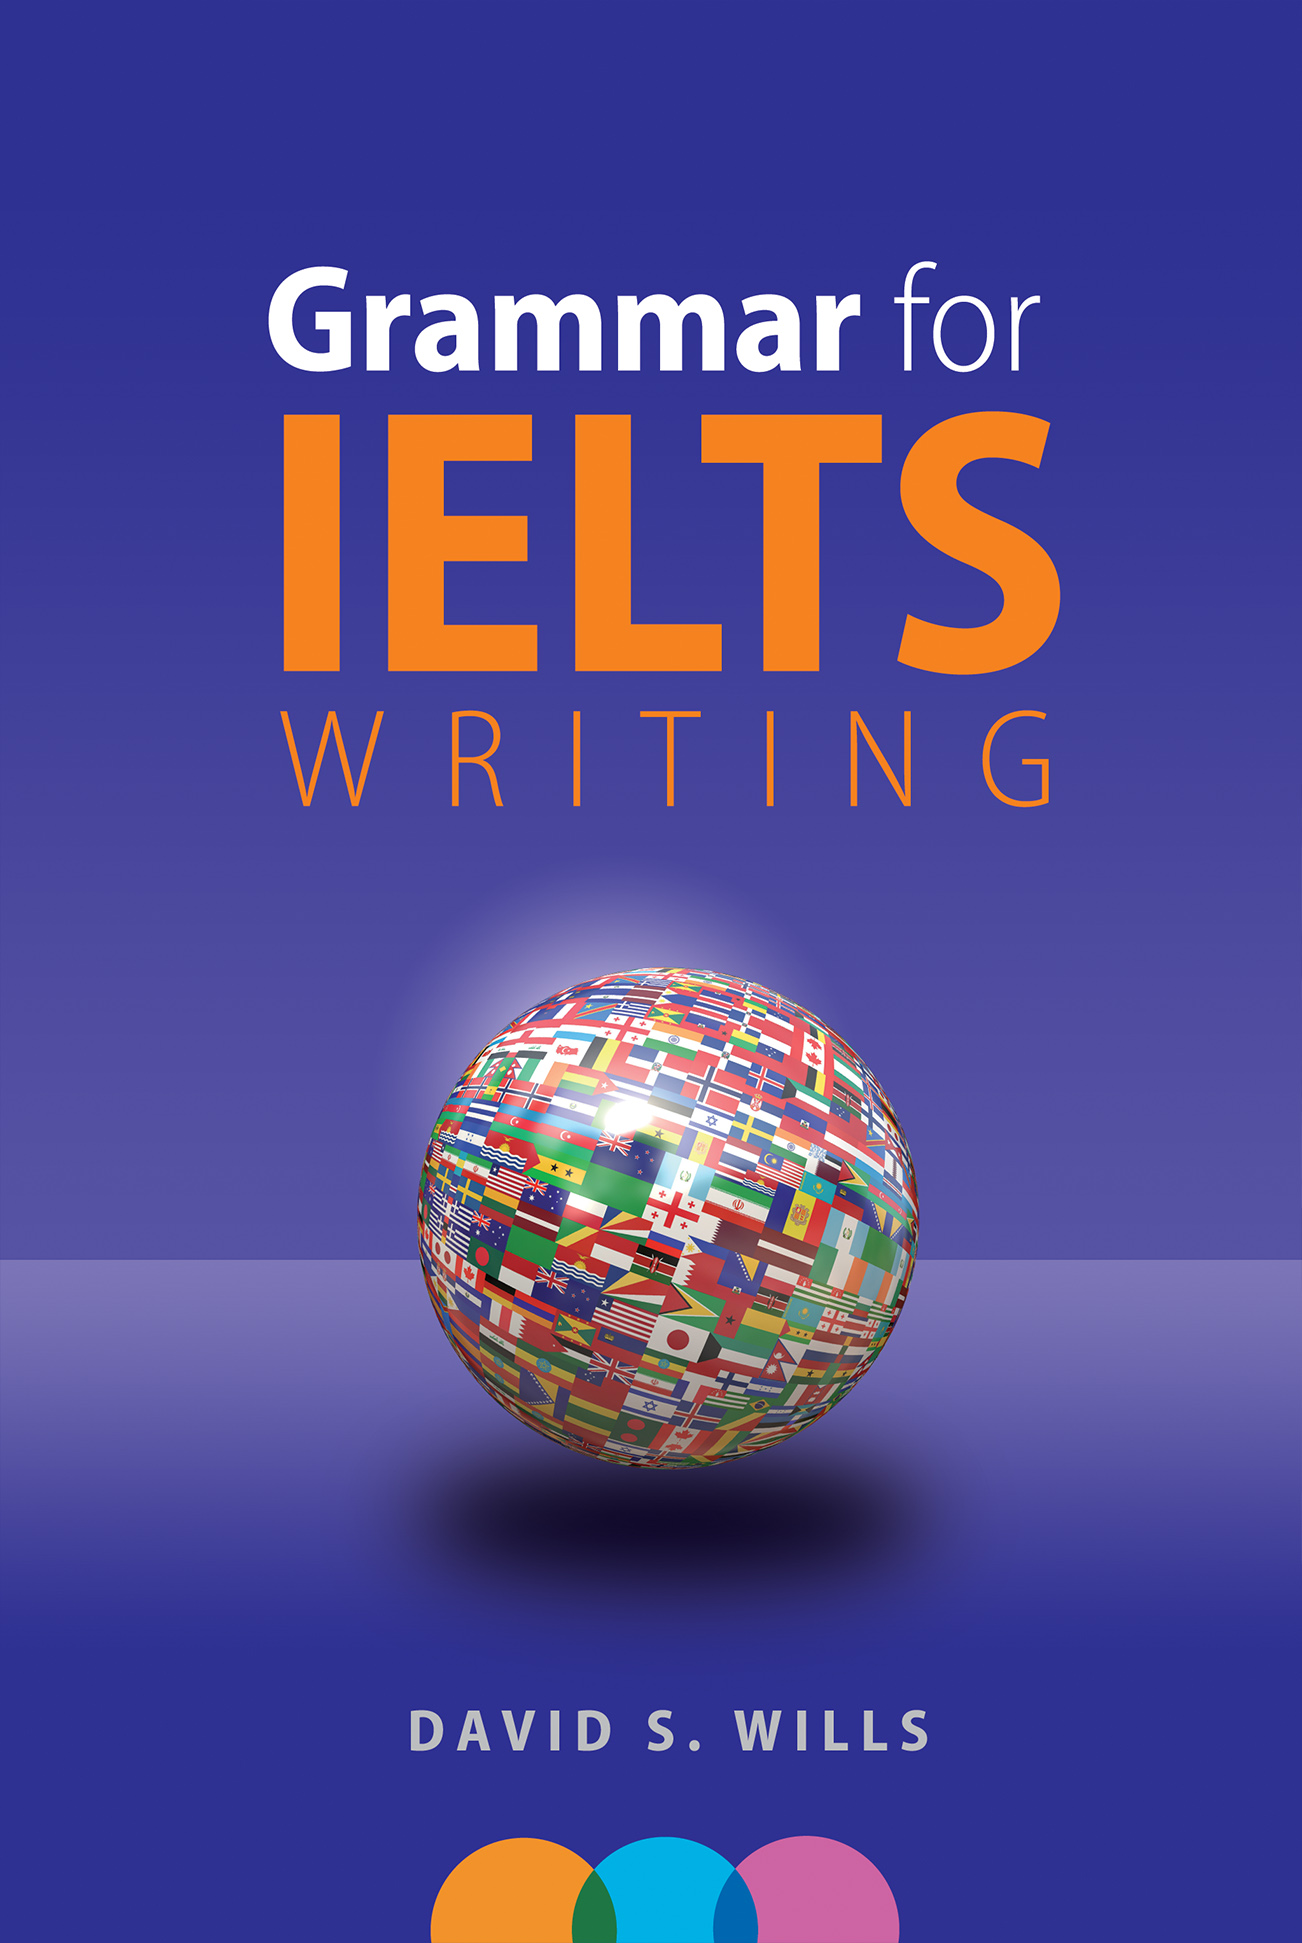 new cover Small - IELTS Writing Task 2 Essay Structures